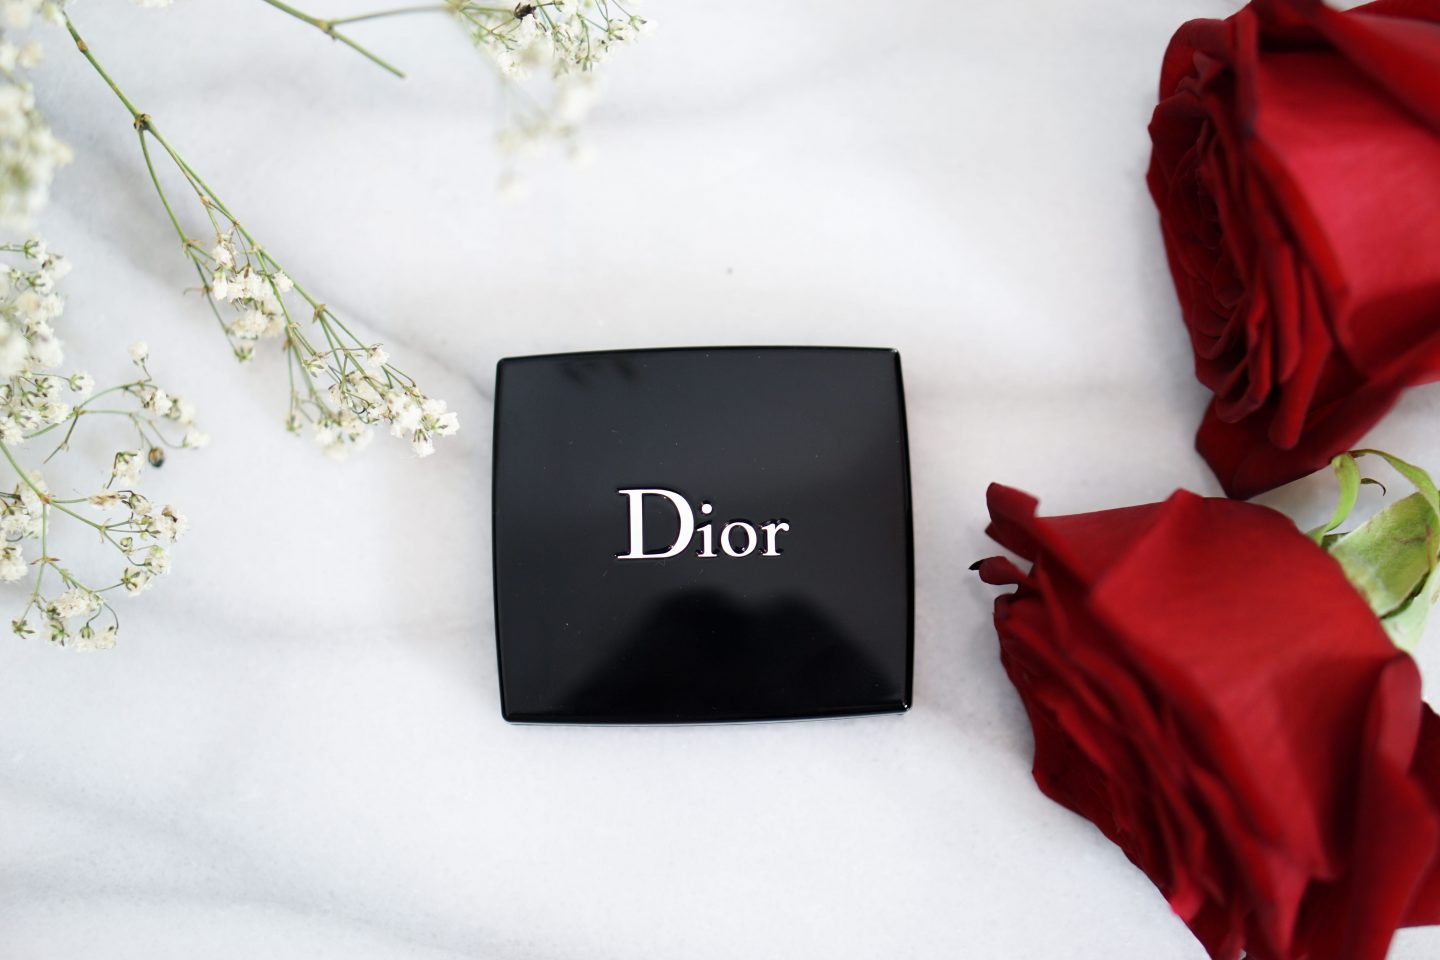 Diorskin Forever Foundation by Dior 2 - Style and the Sass